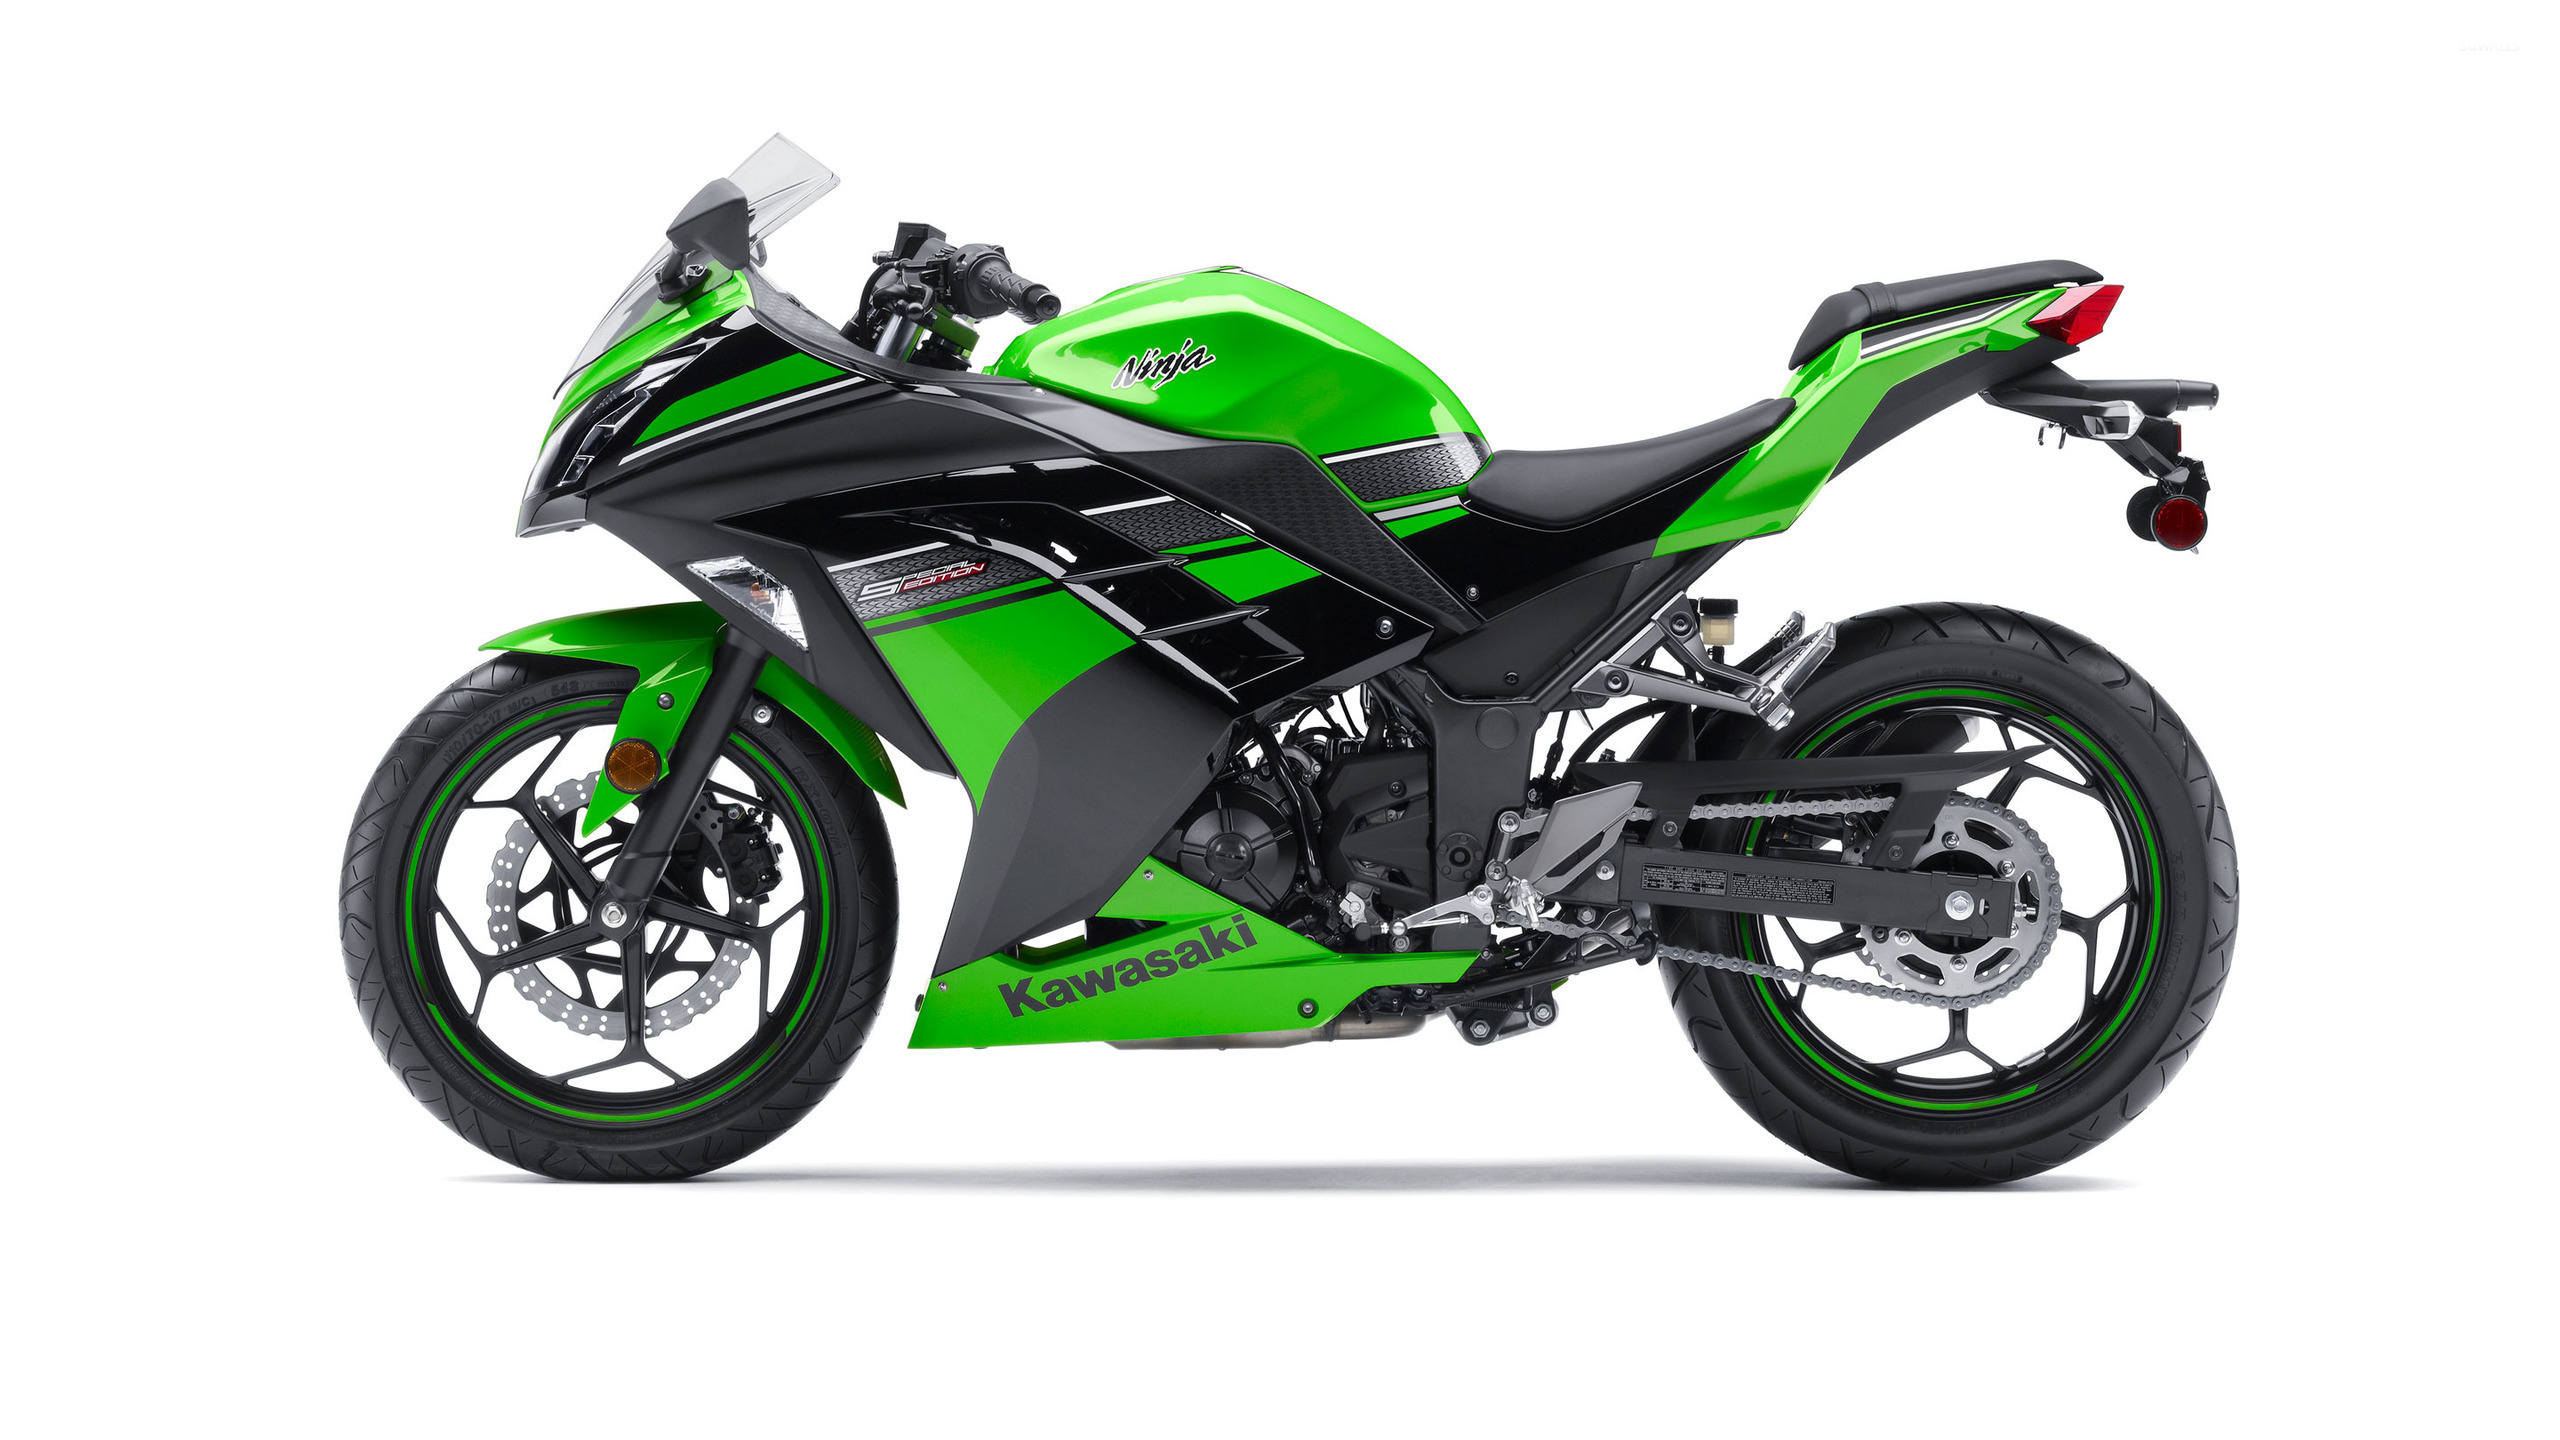 2013 Kawasaki Ninja 300 Wallpaper  Motorcycle Wallpapers